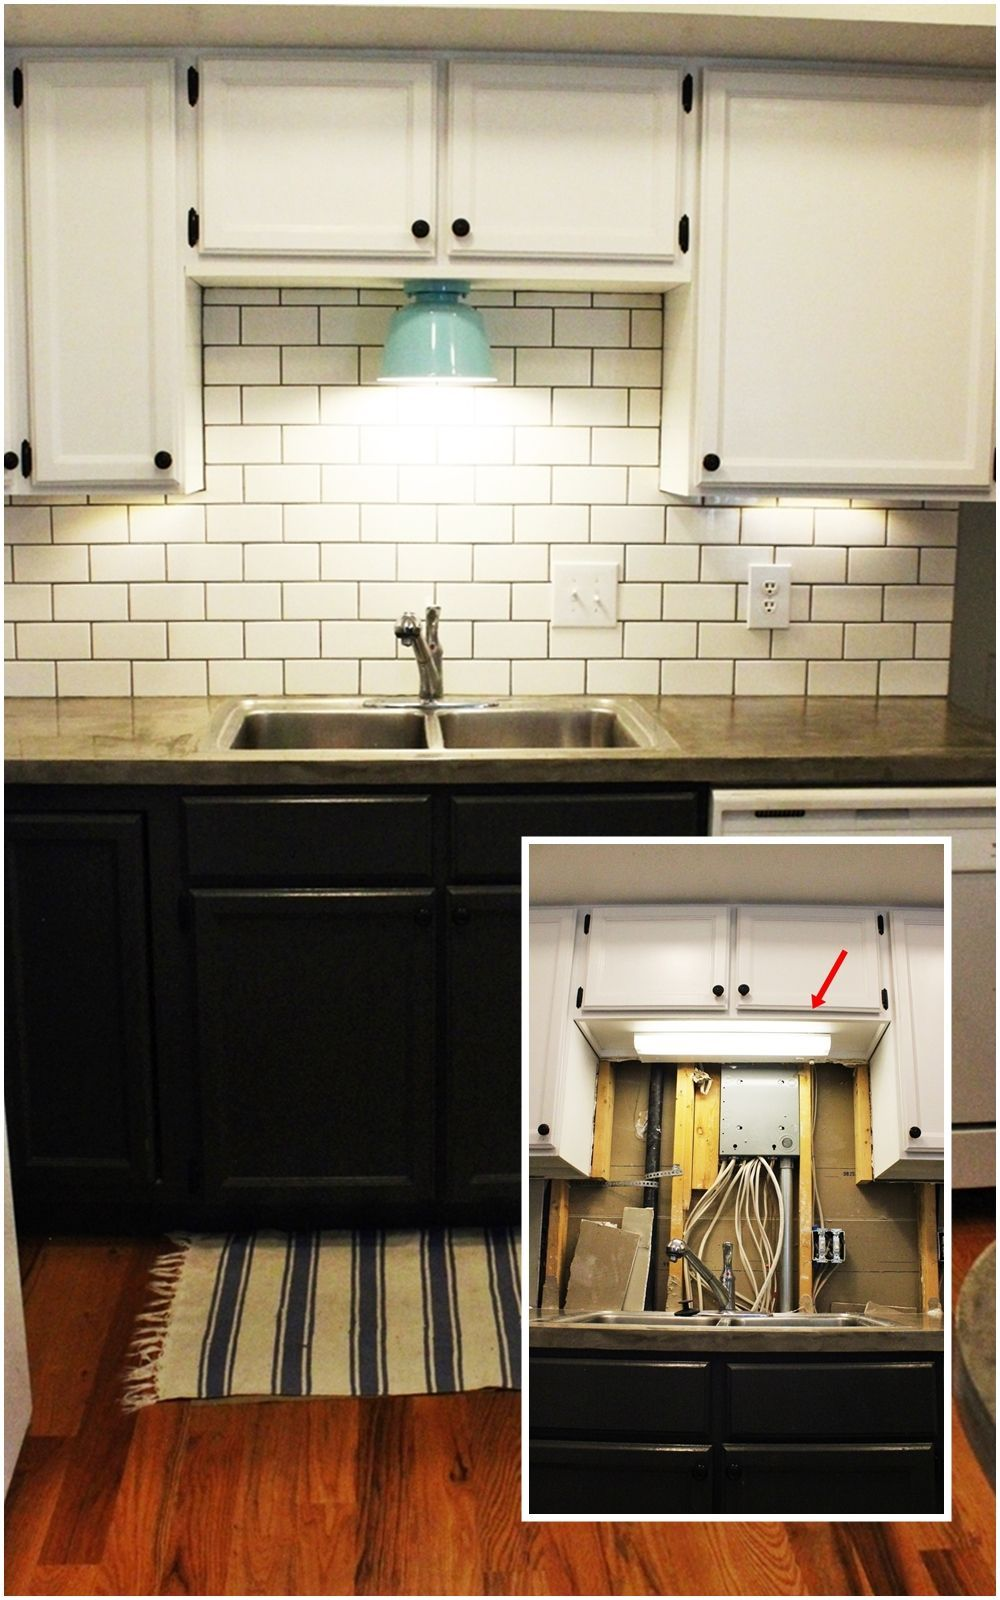 Lighting Above Kitchen Sink Diy kitchen lighting upgrade led under cabinet lights above the diy kitchen lighting upgrade led under cabinet lights above the sink light workwithnaturefo